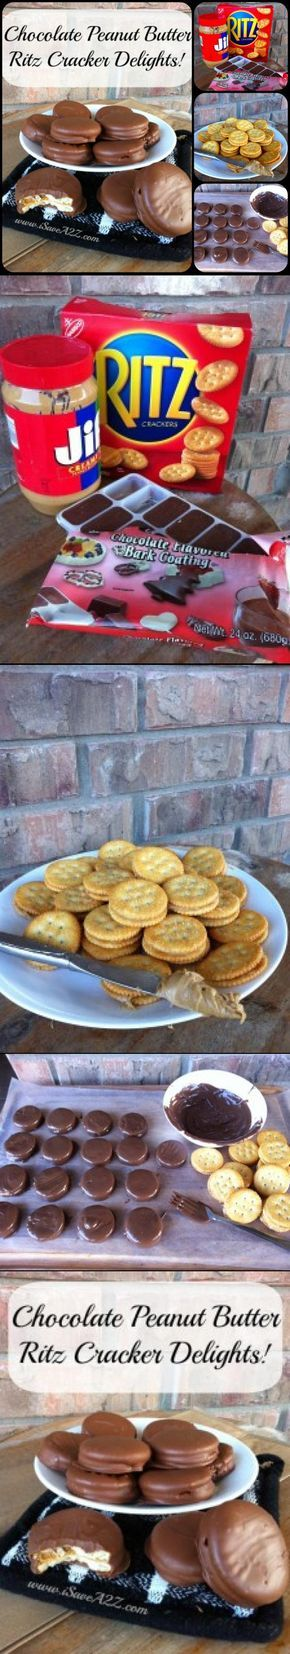 YUMMY Chocolate Peanut Butter Ritz Cracker Recipe!!! You will want to pin this and save it for later! http://www.isavea2z.com/chocolate-peanut-butter-ritz-crackers/